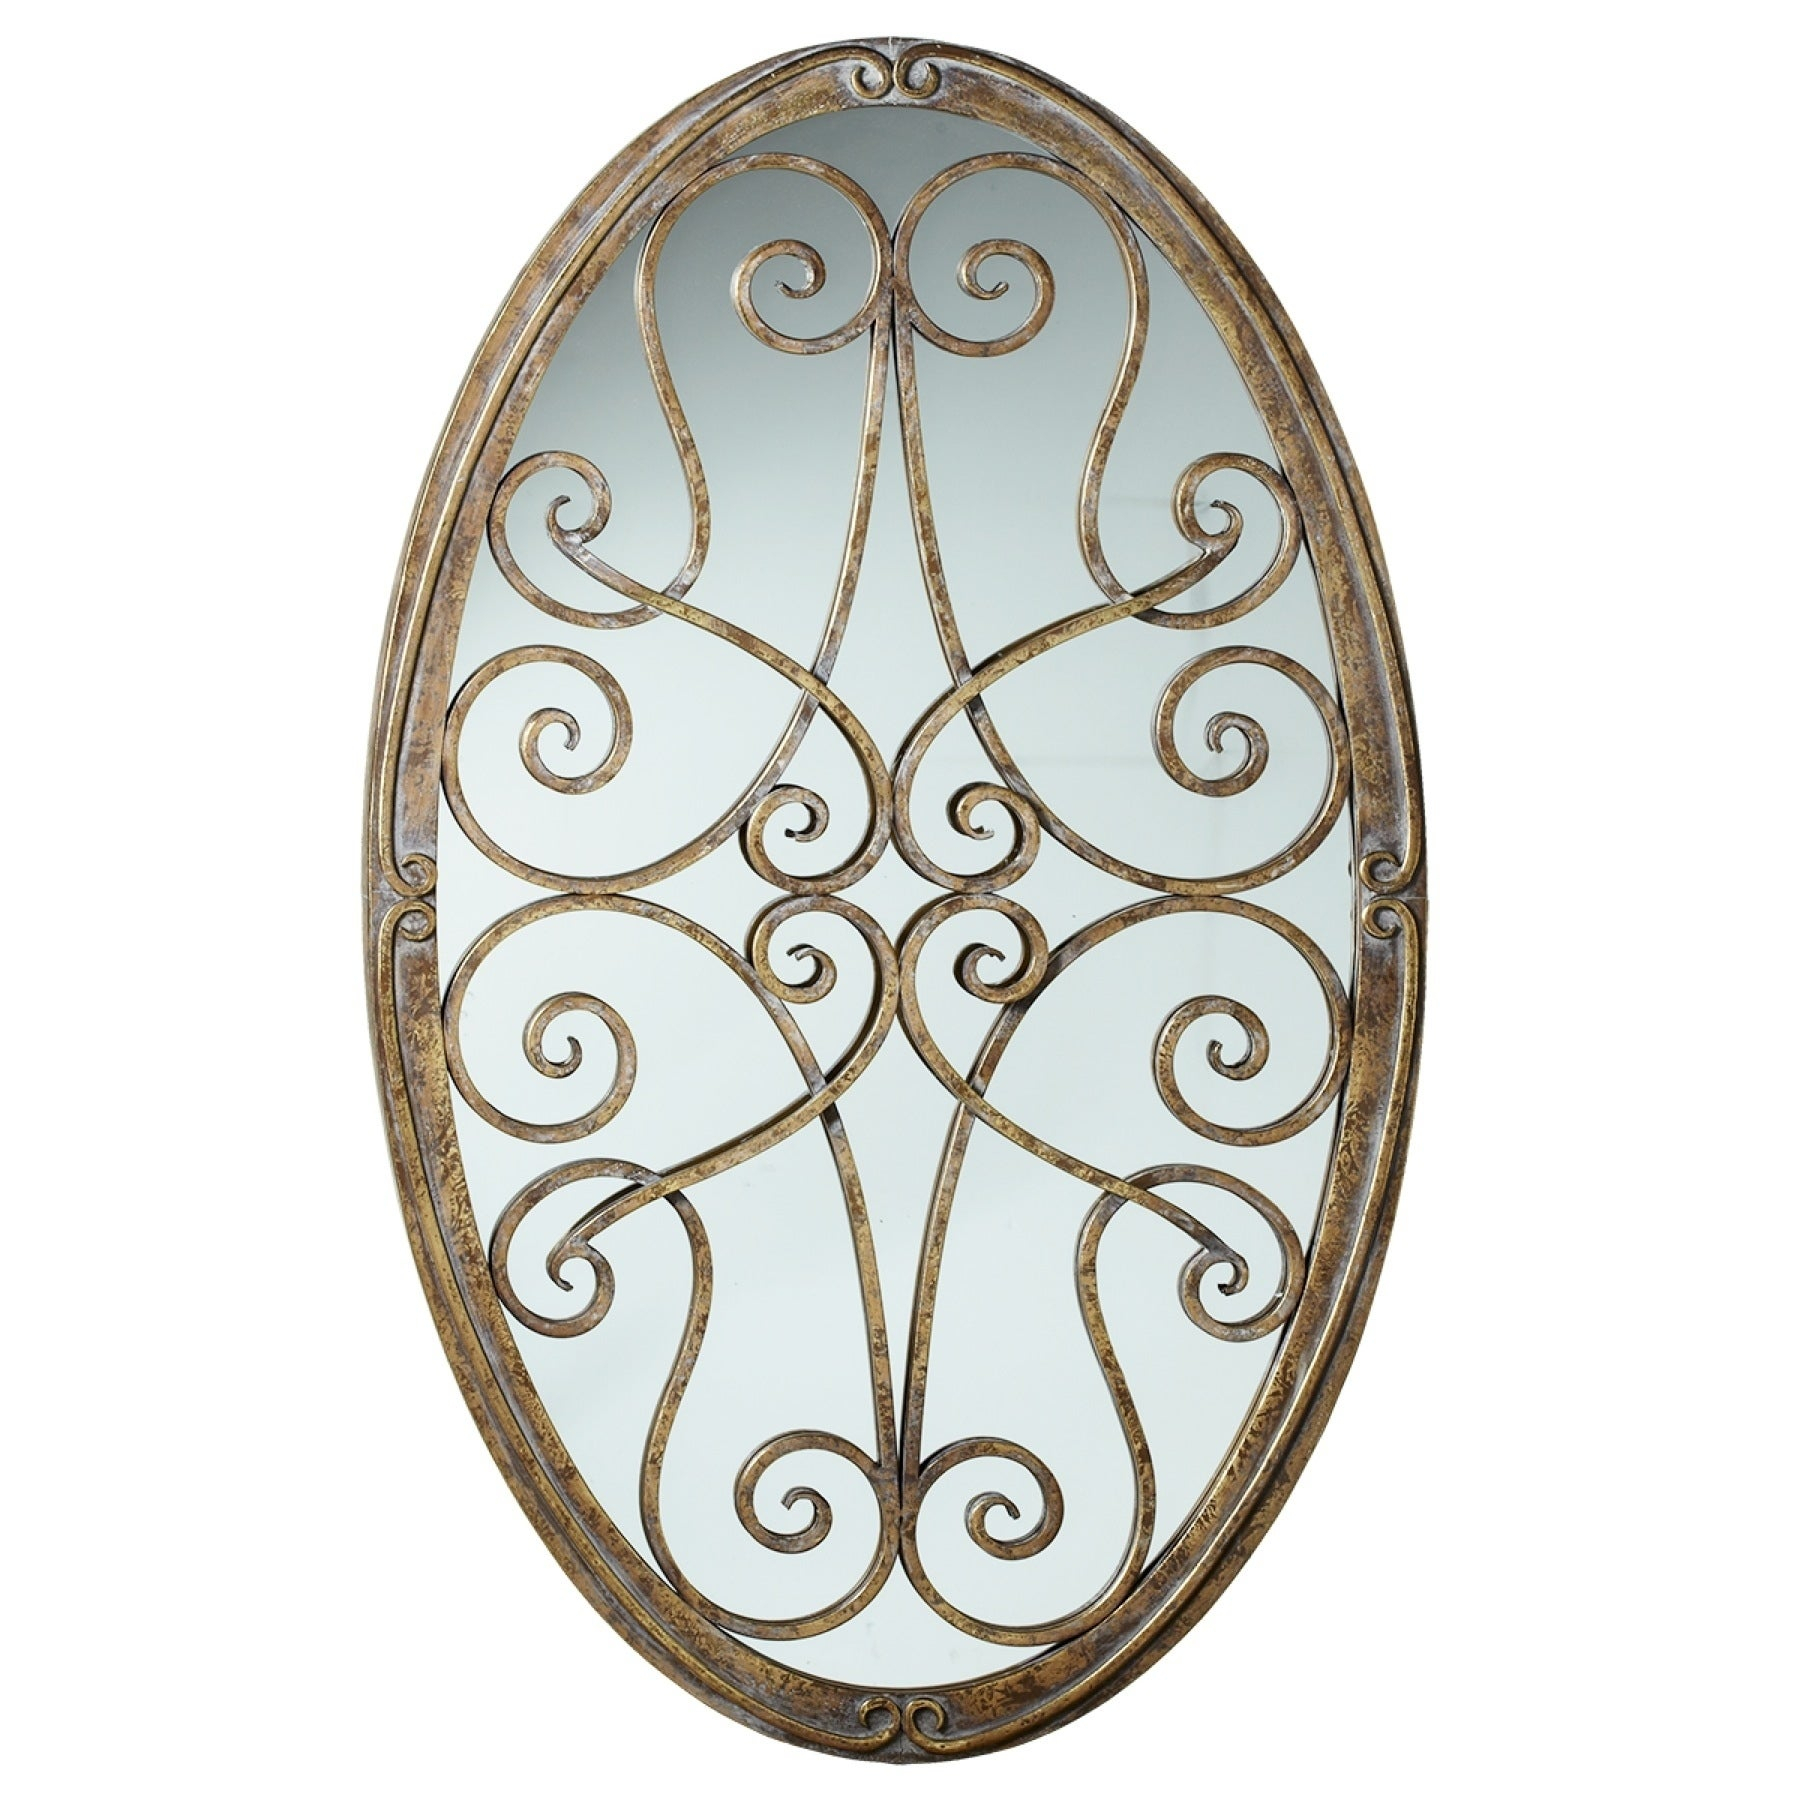 Framed Oval Scroll Wall Decor With Mirror (View 8 of 30)